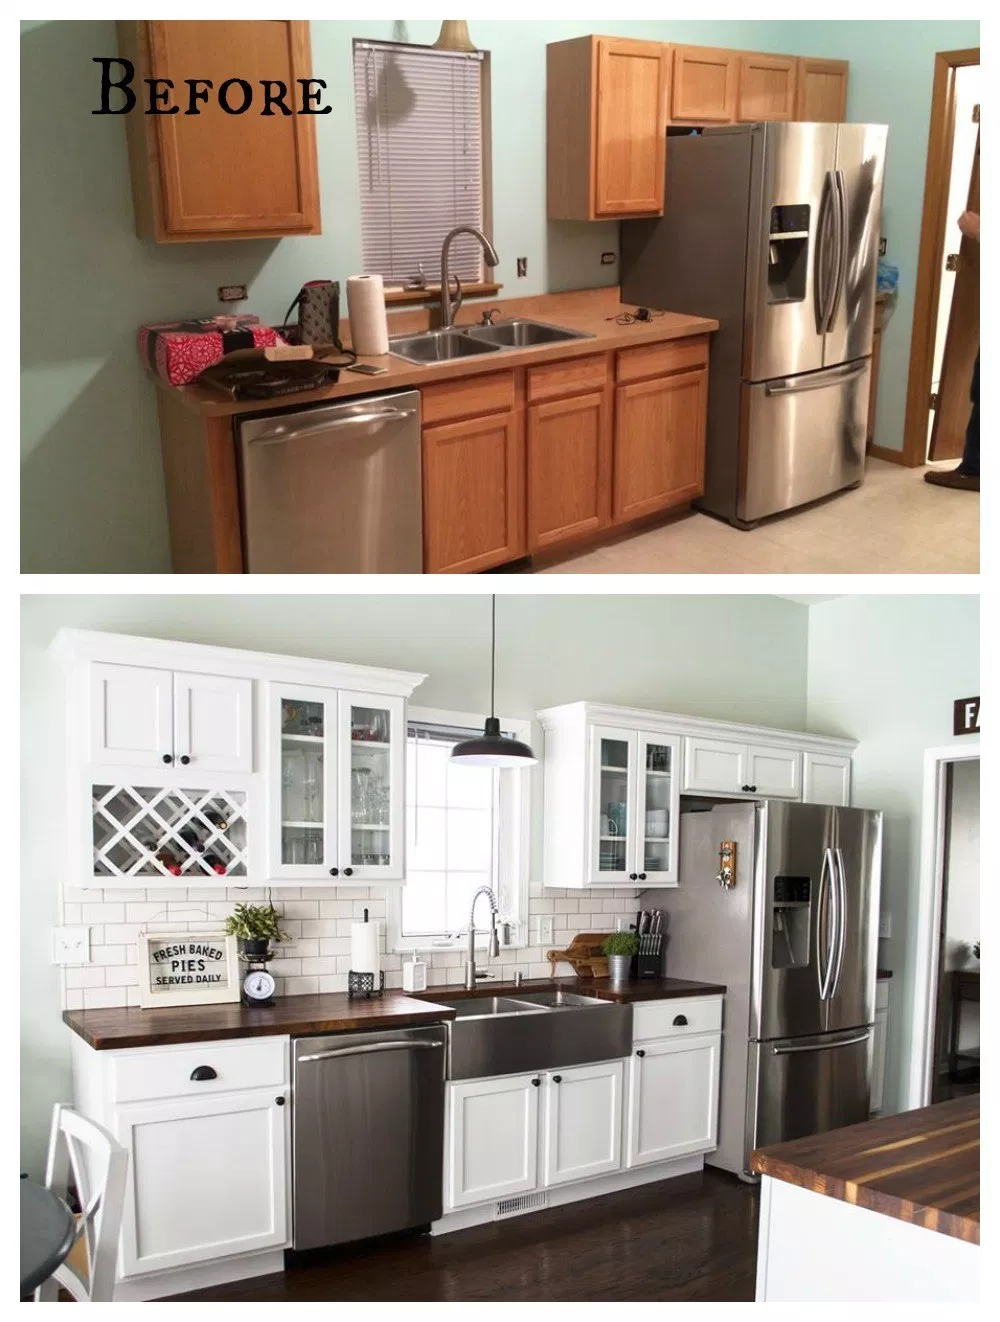 27 Inspiring Kitchen Makeovers Before And After With Images